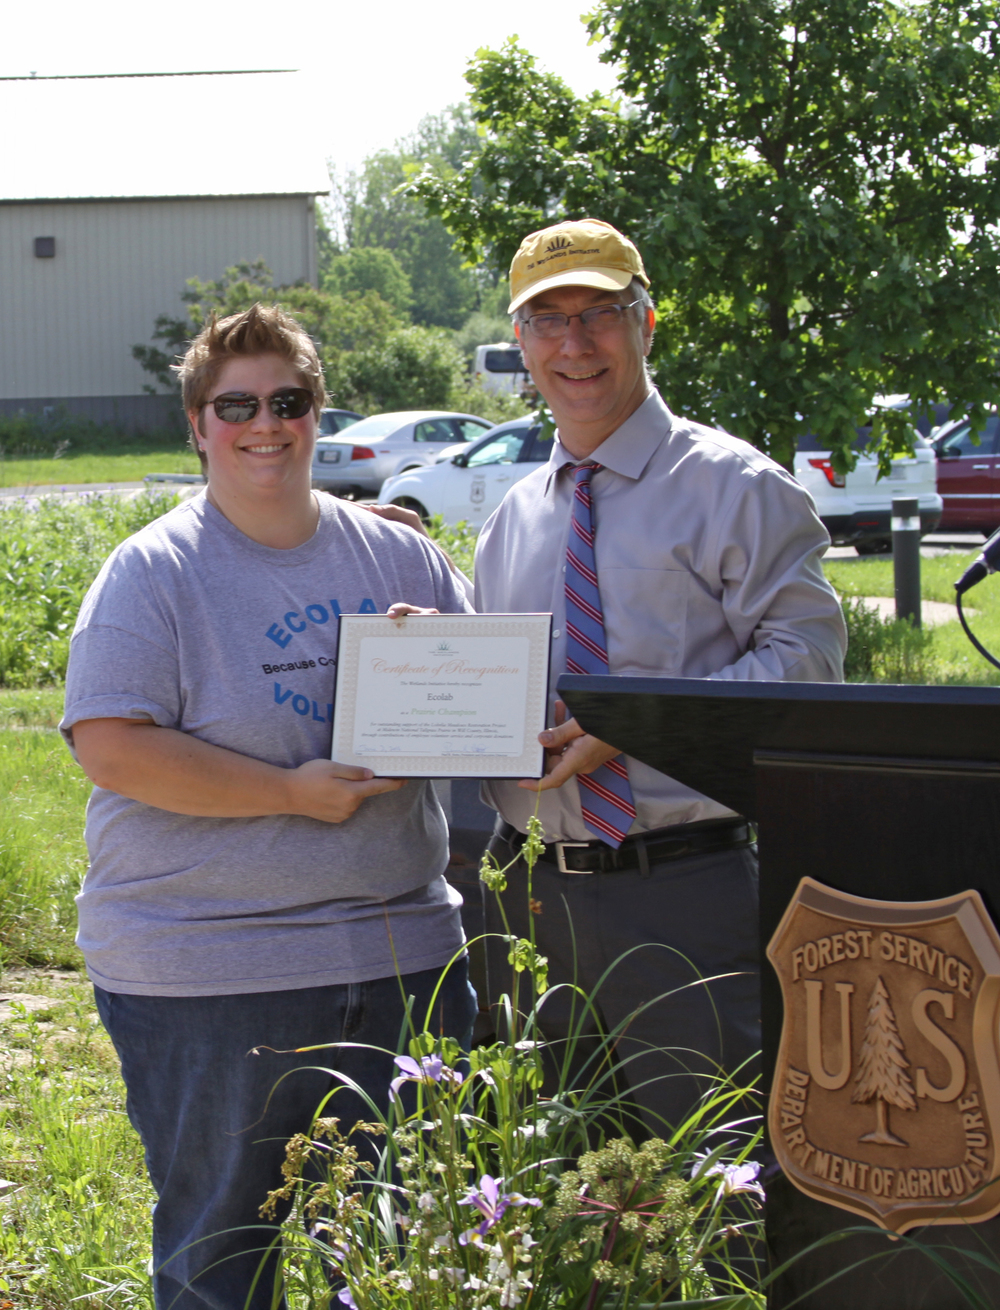 Kate McNichols of Ecolab receives a certificate of recognition from TWI Executive Director Paul Botts.